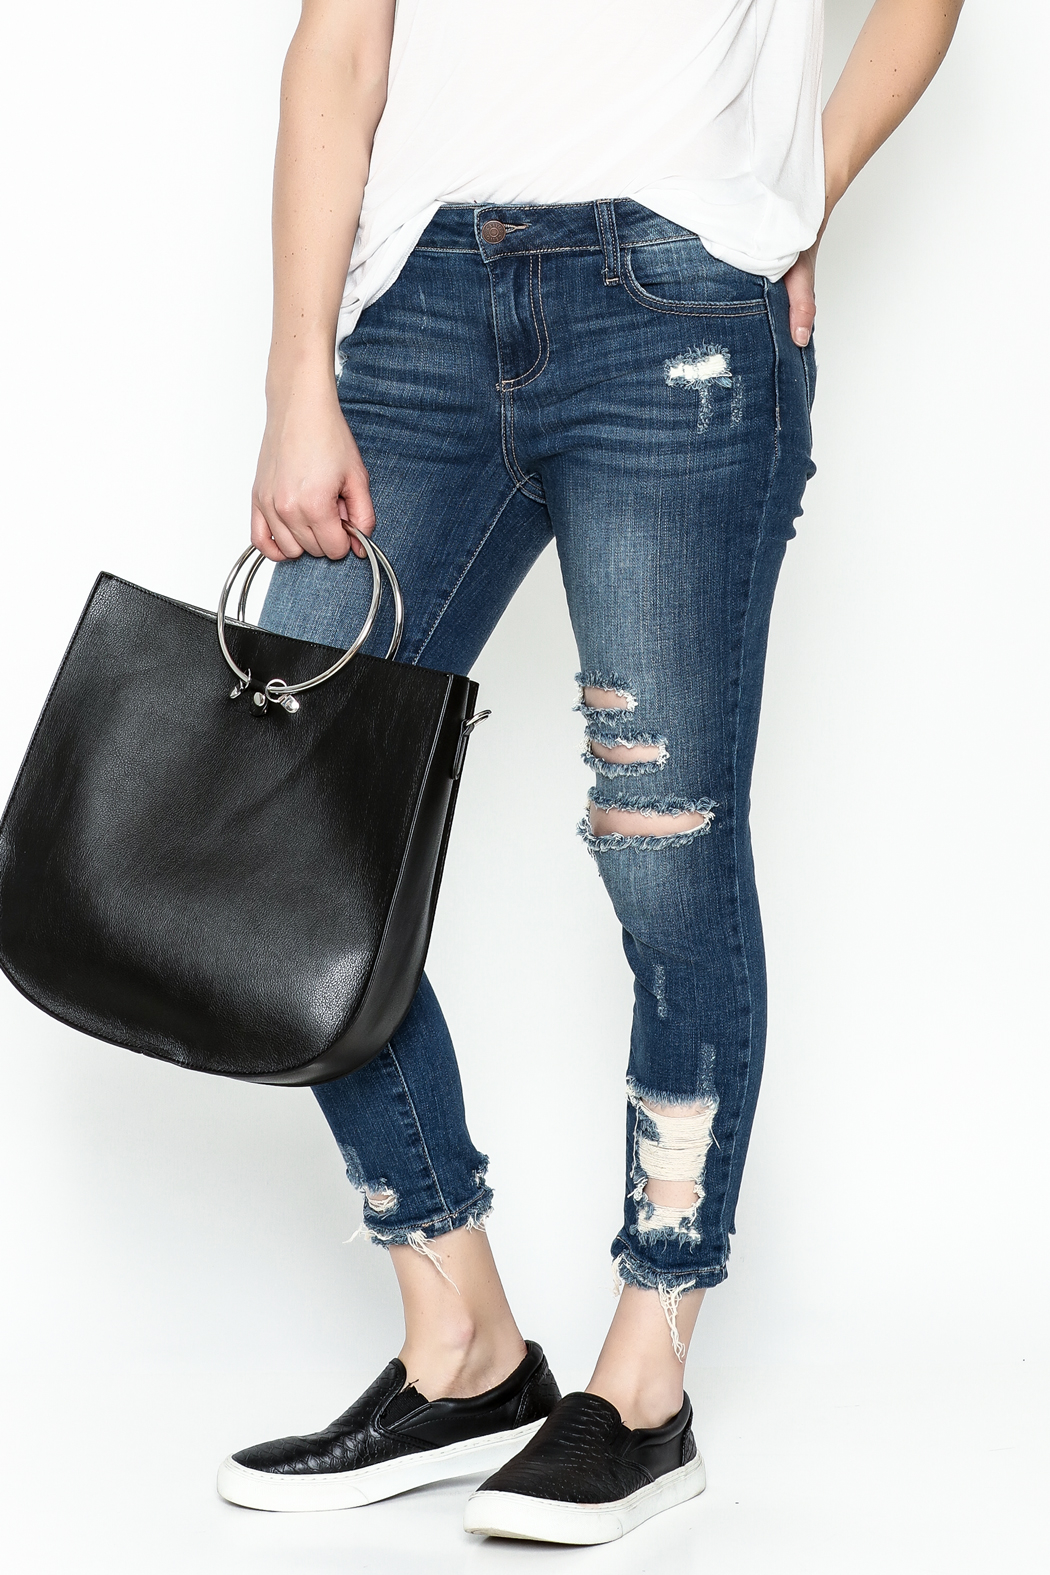 Polly & Esther Denim Jeans - Main Image